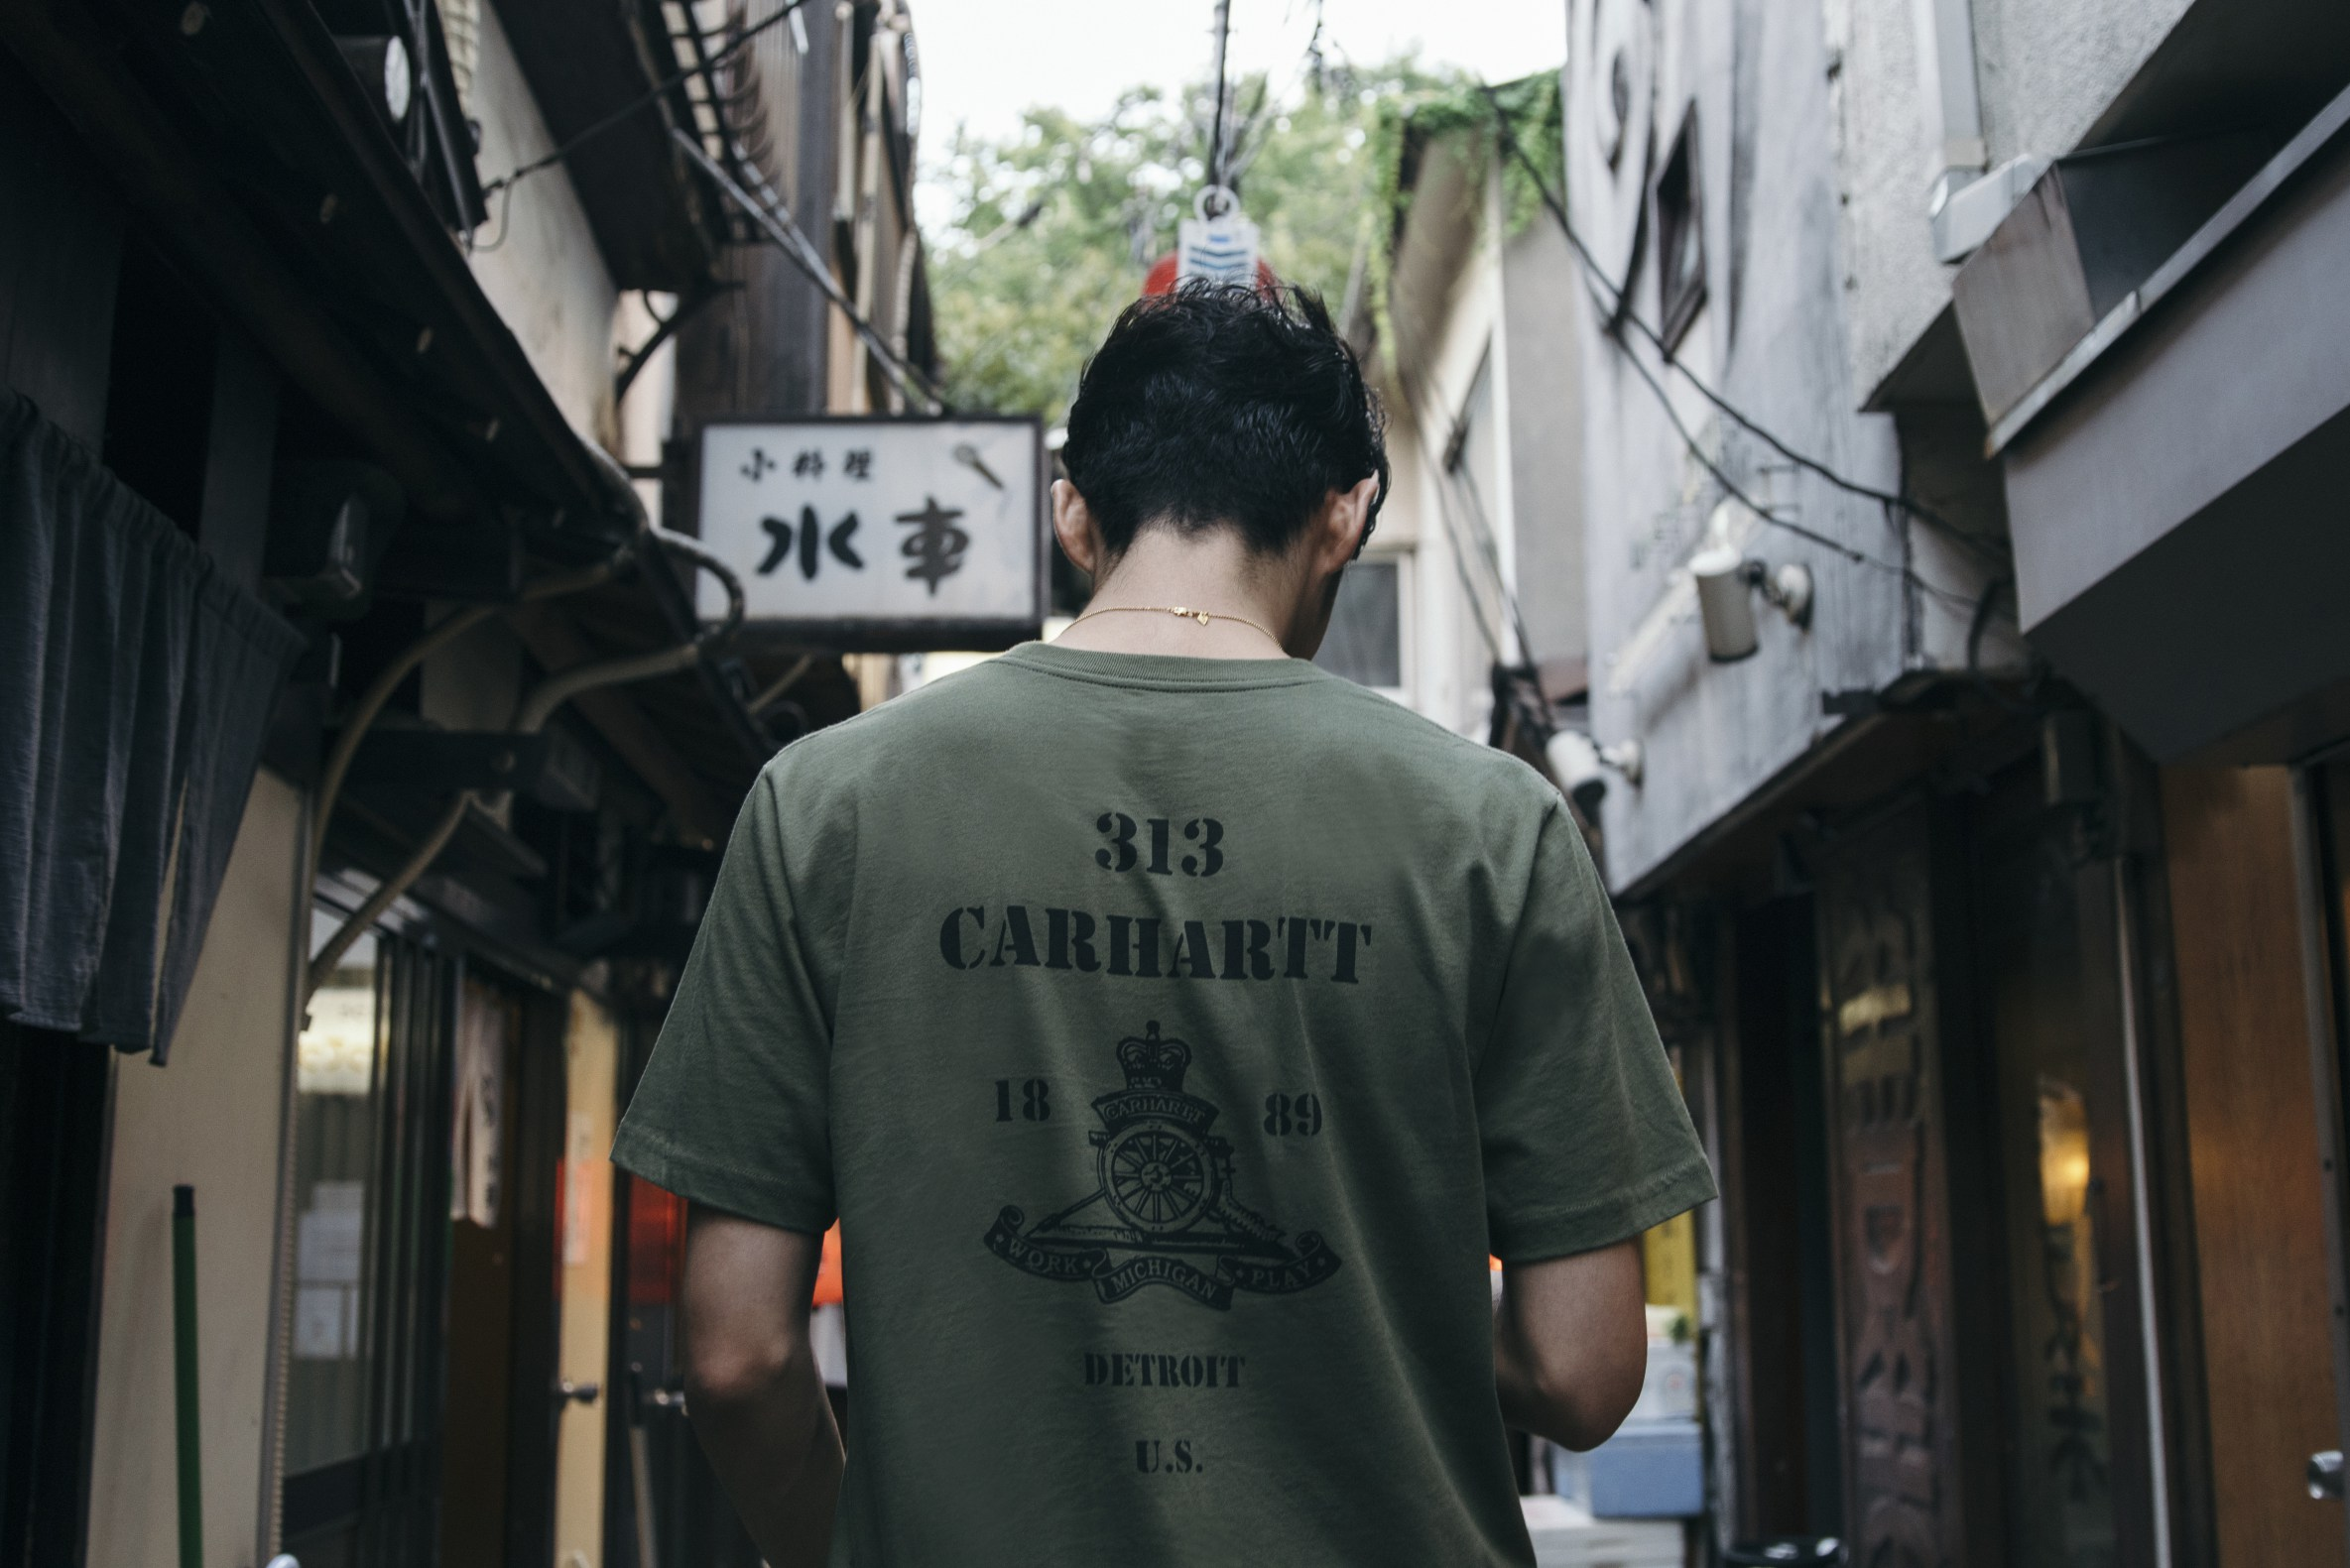 carhartt-wip-2016-fall-capsule-collection-01